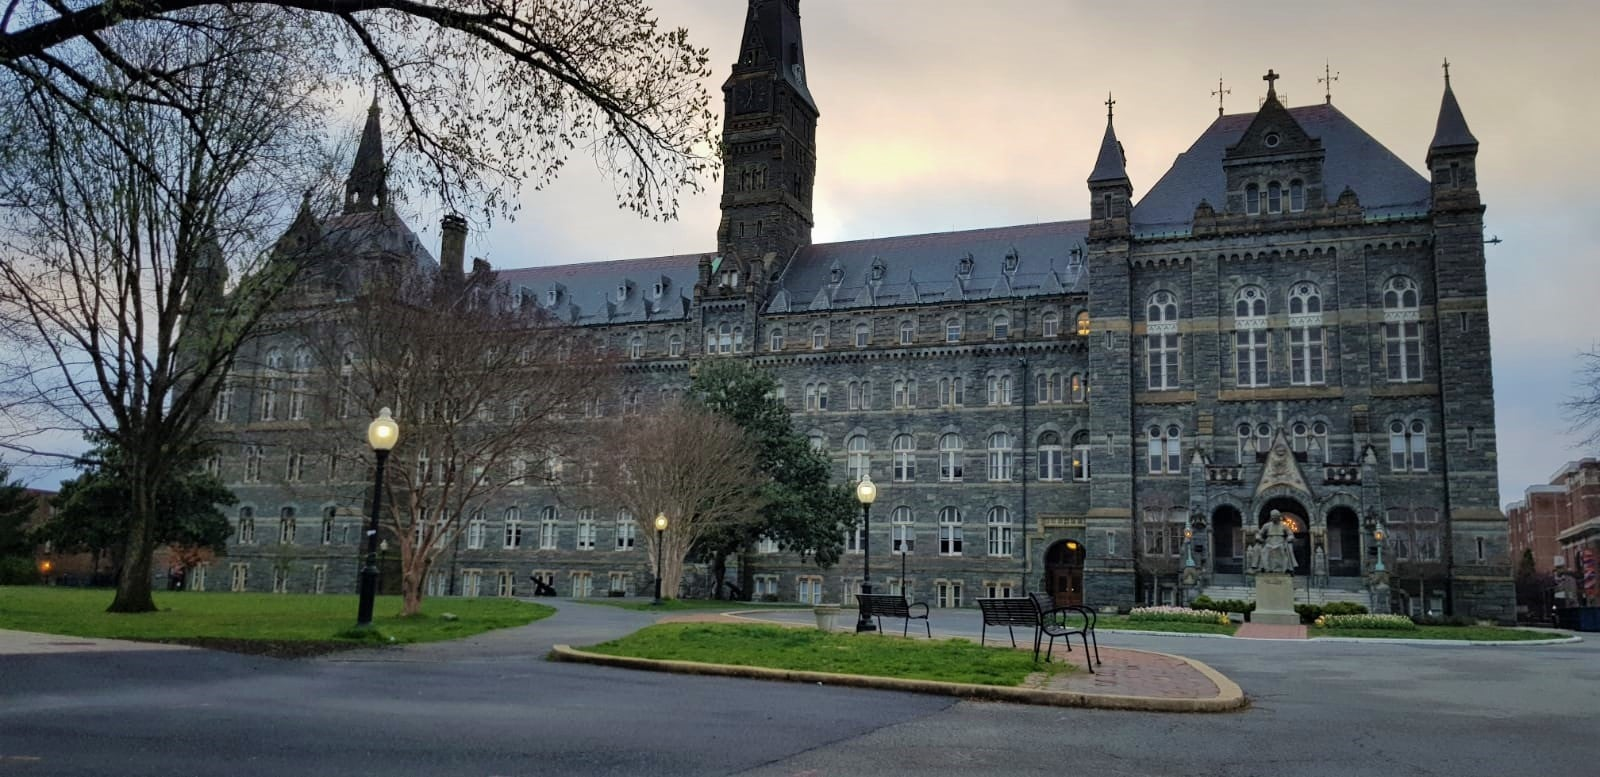 Georgetown University's main campus. - Picture by Askari Hasan